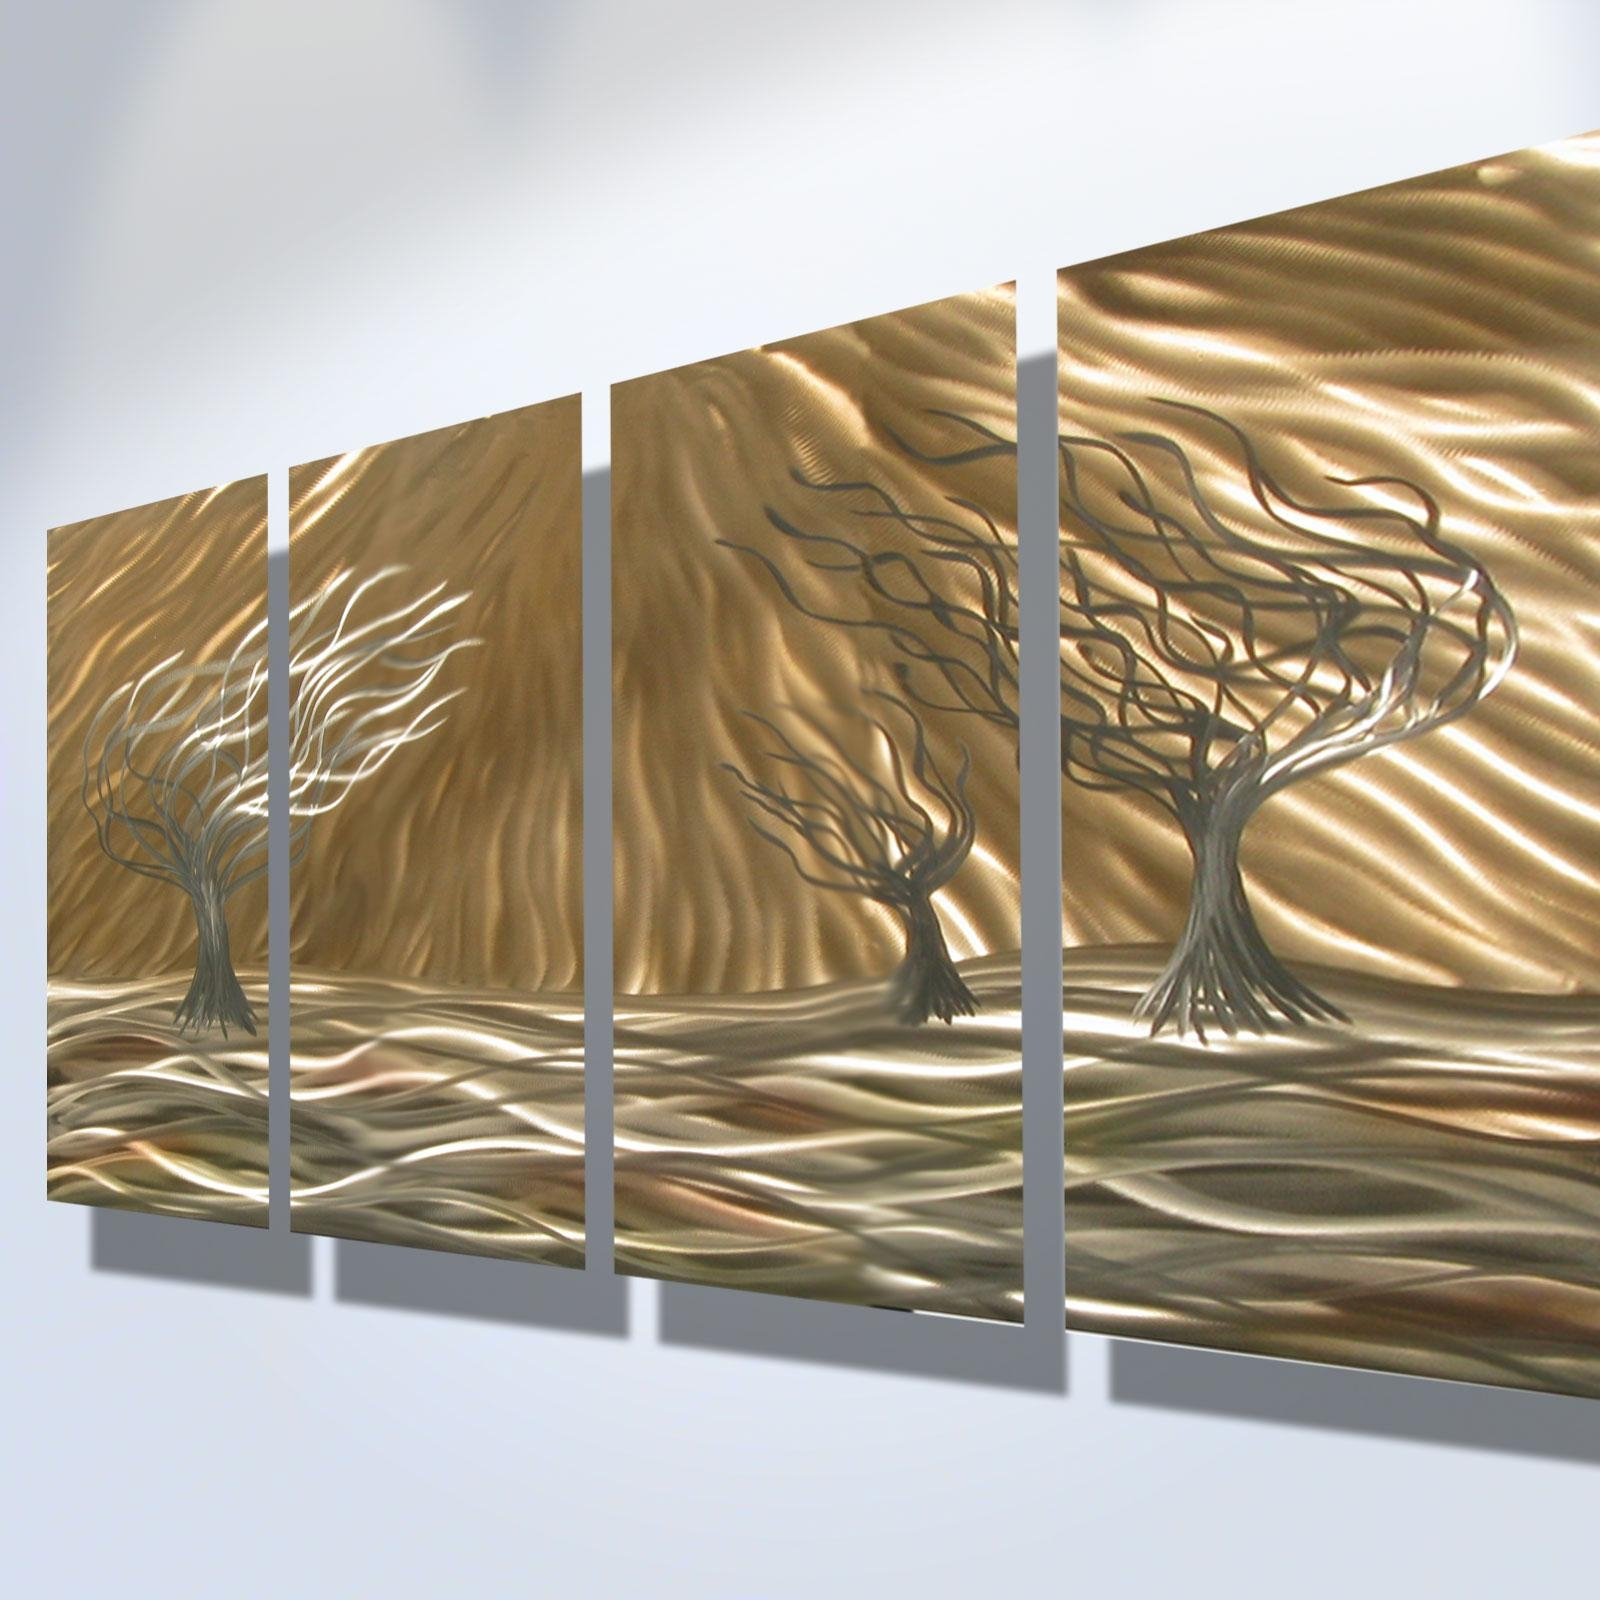 3 Trees 4 Panel – Abstract Metal Wall Art Contemporary Modern Pertaining To Metal Abstract Wall Art (View 10 of 20)